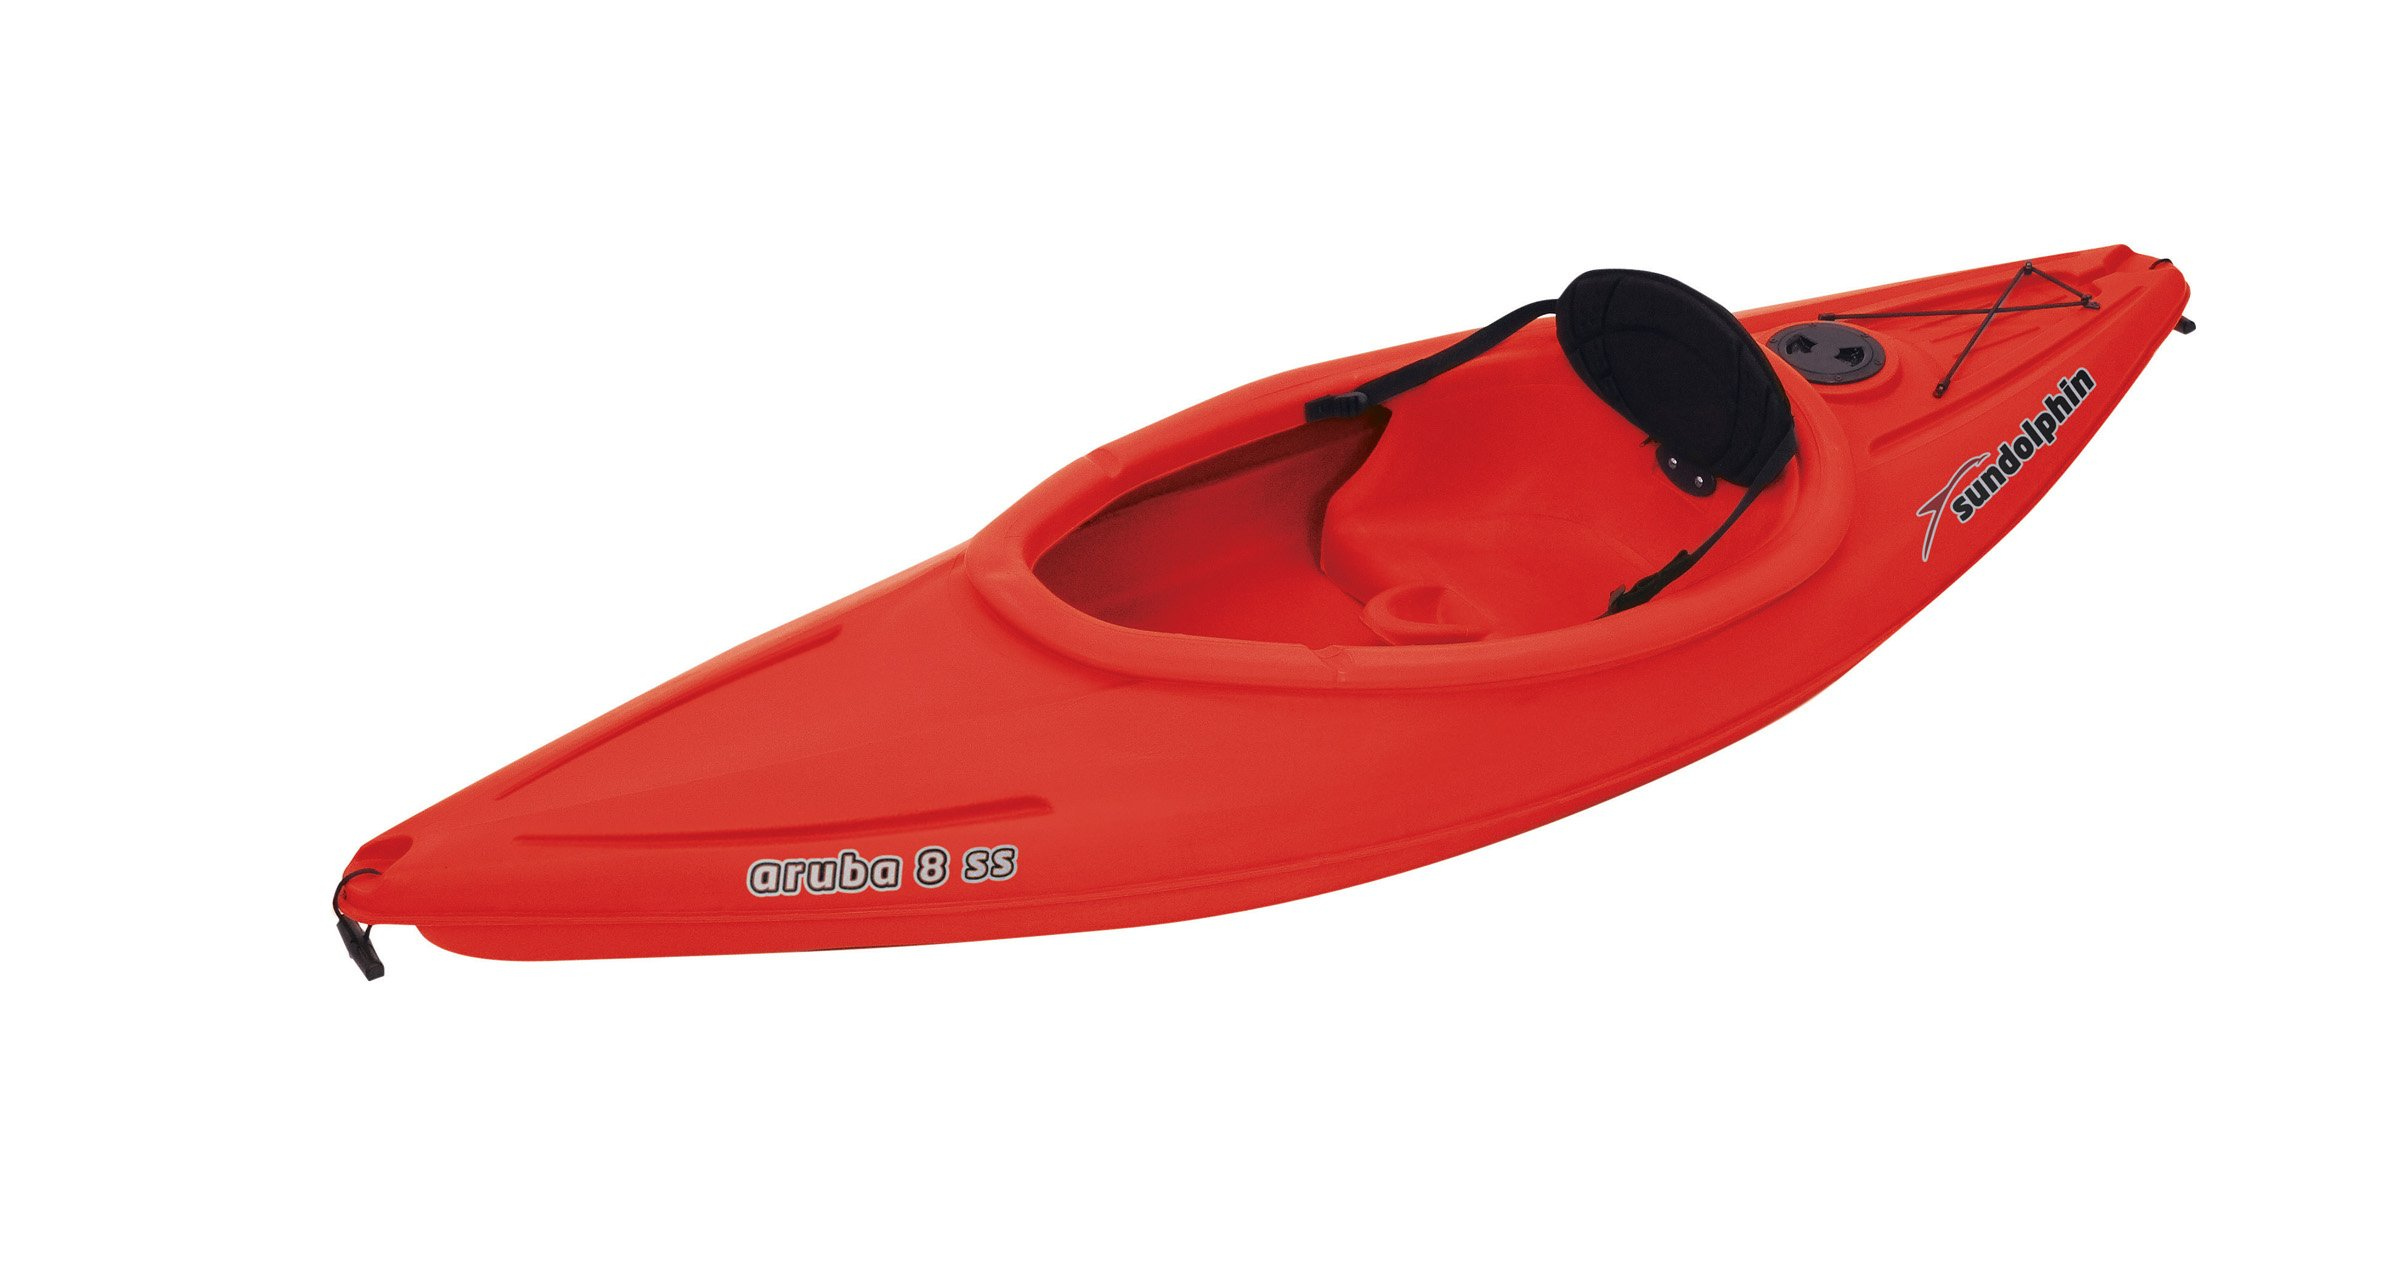 SUNDOLPHIN Sun Dolphin Aruba SS Sit-in Kayak (Red, 8-Feet) by SUNDOLPHIN (Image #1)